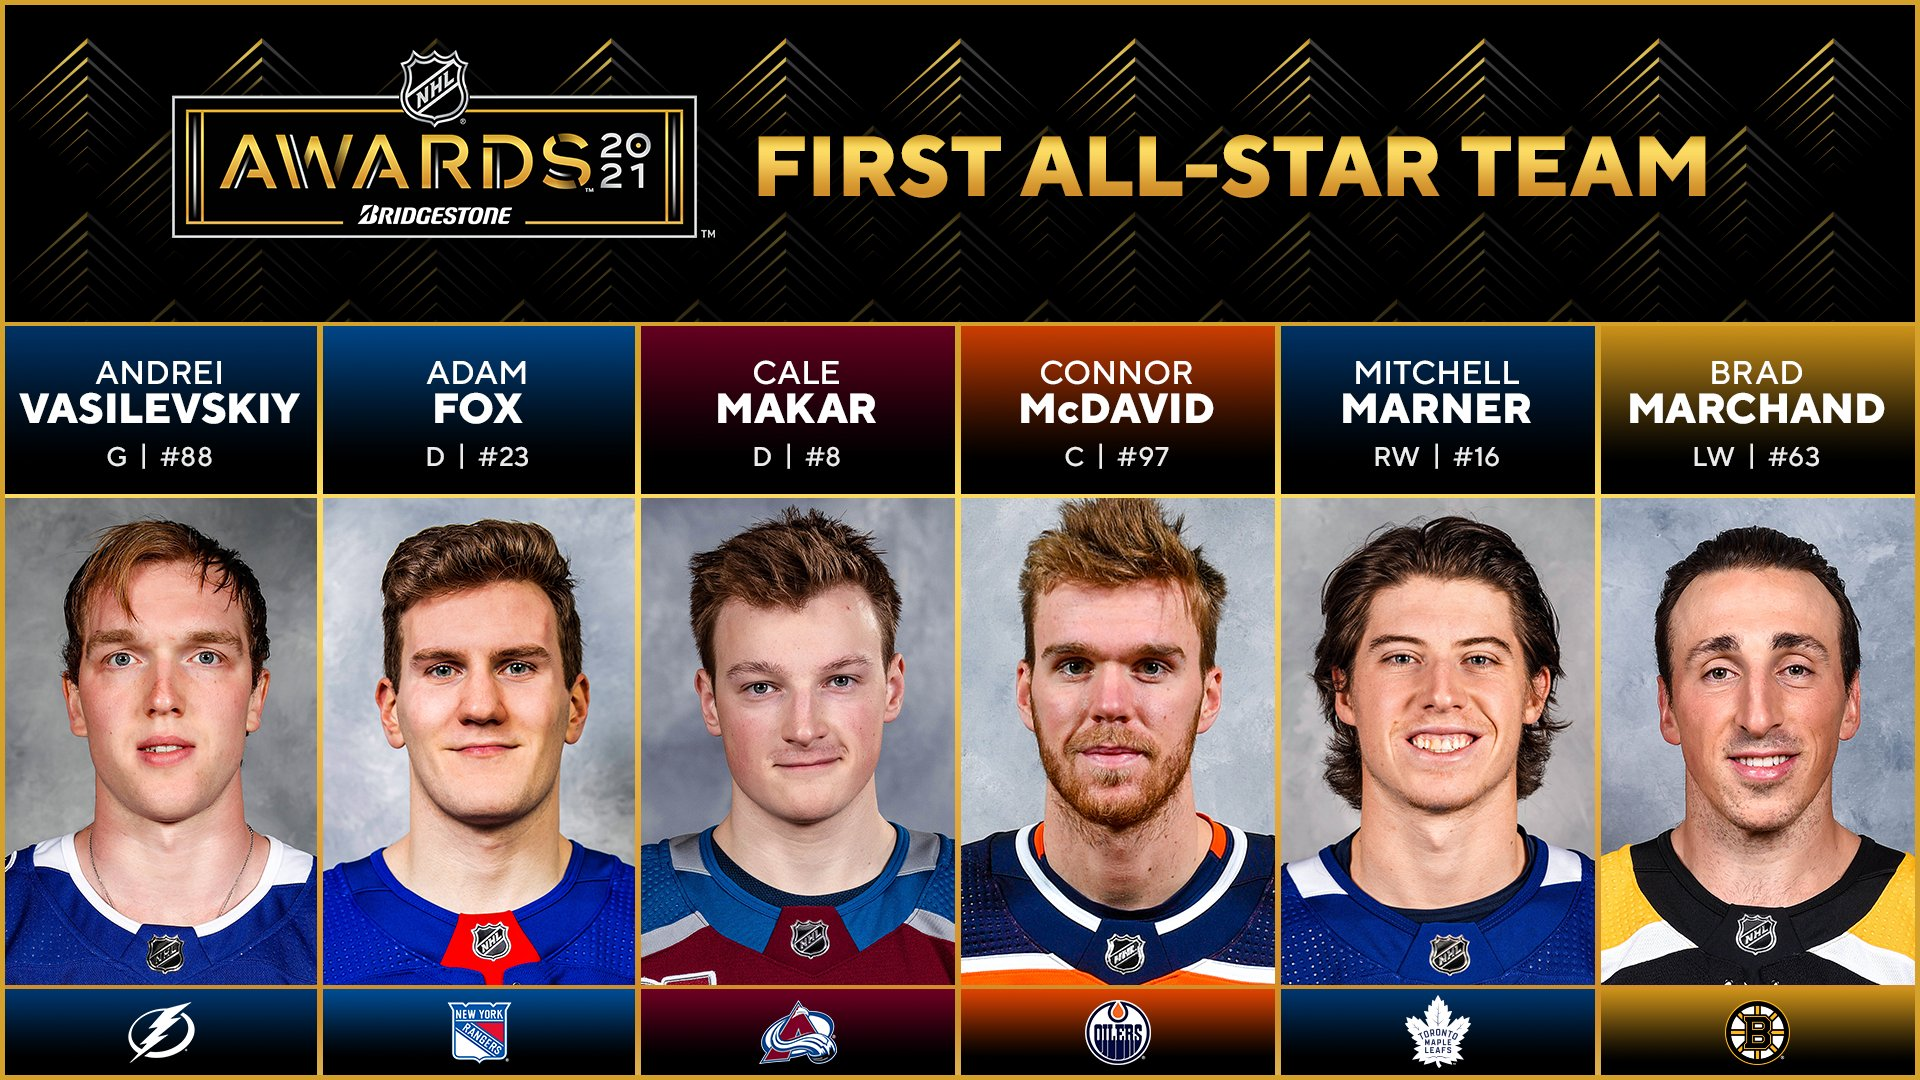 McDavid joins Gretzky as second player in NHL history with unanimous Hart Trophy win